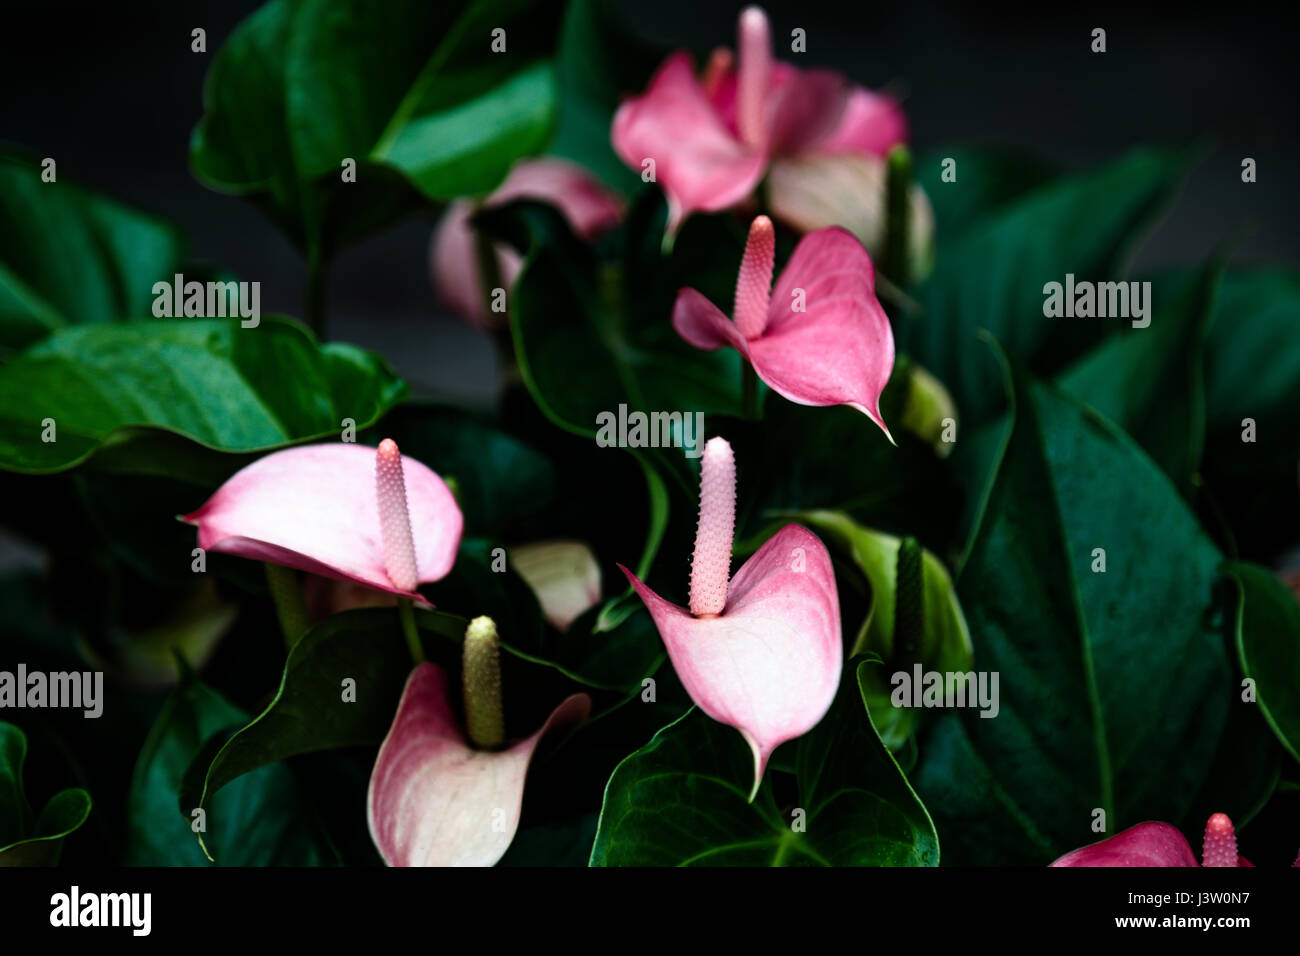 Pink Flamingo Flower or peace lily Stock Photo 140076307